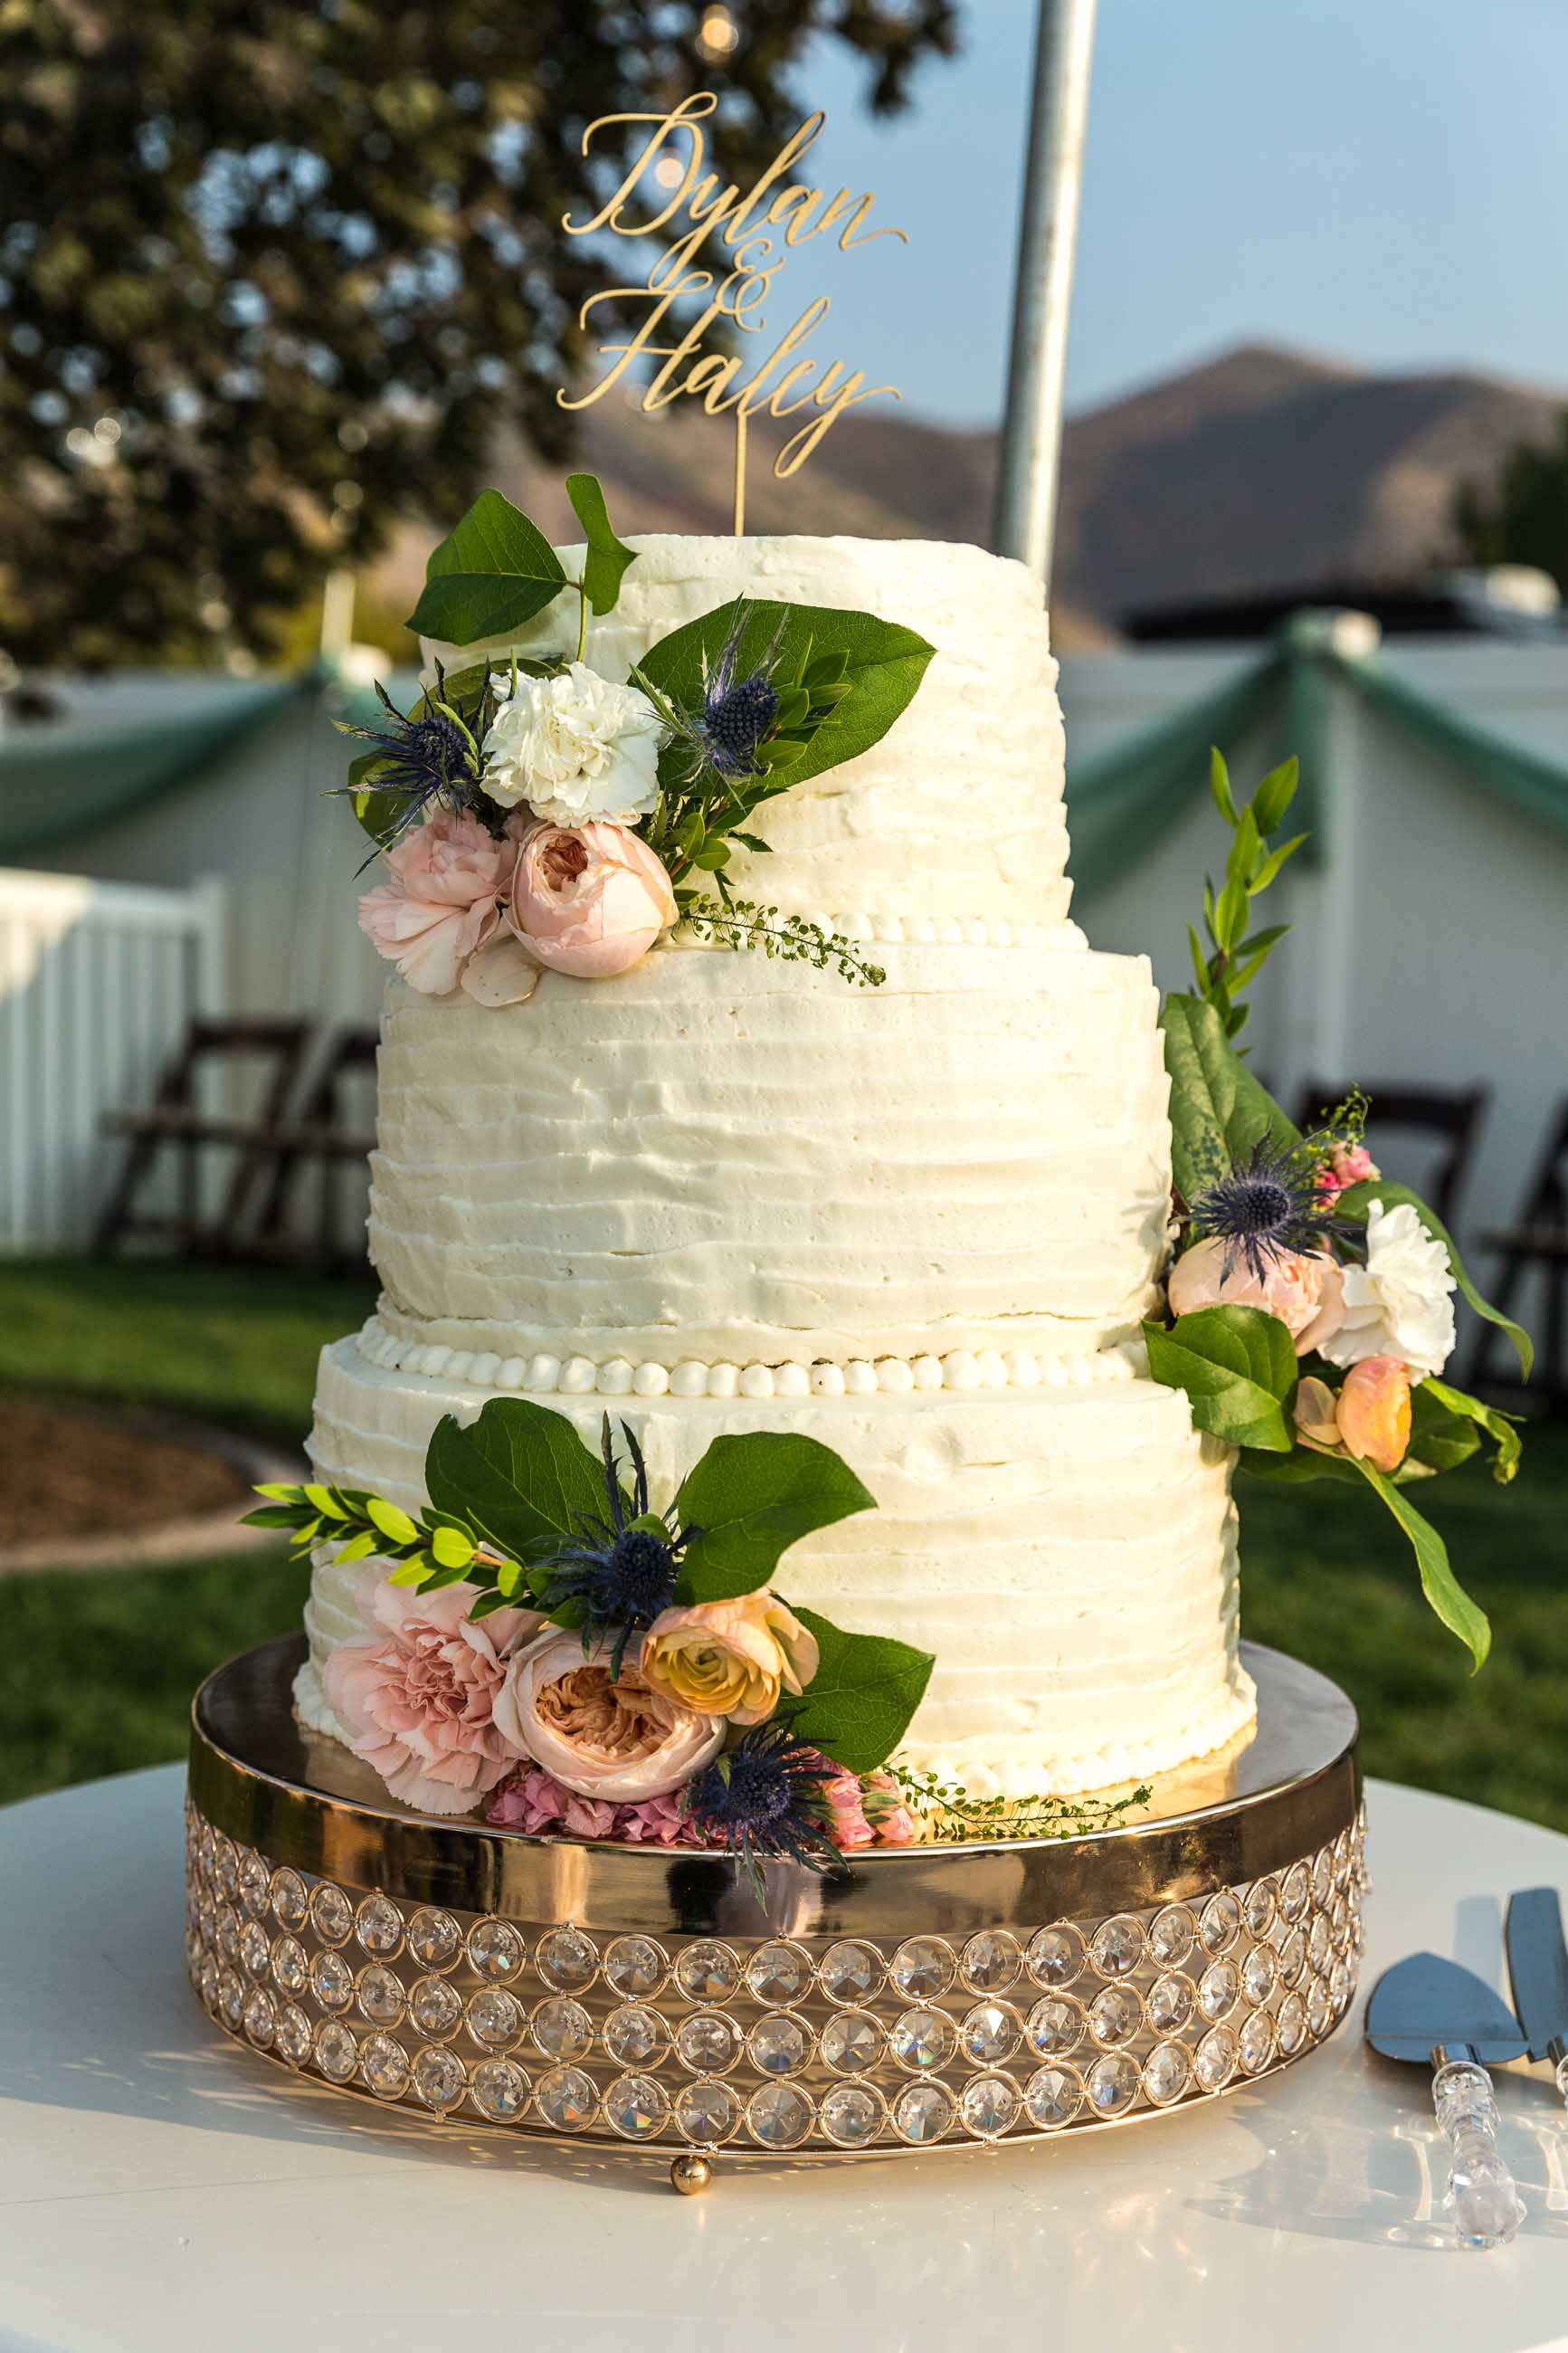 Dylan & Haley Cunningham Wedding Cake